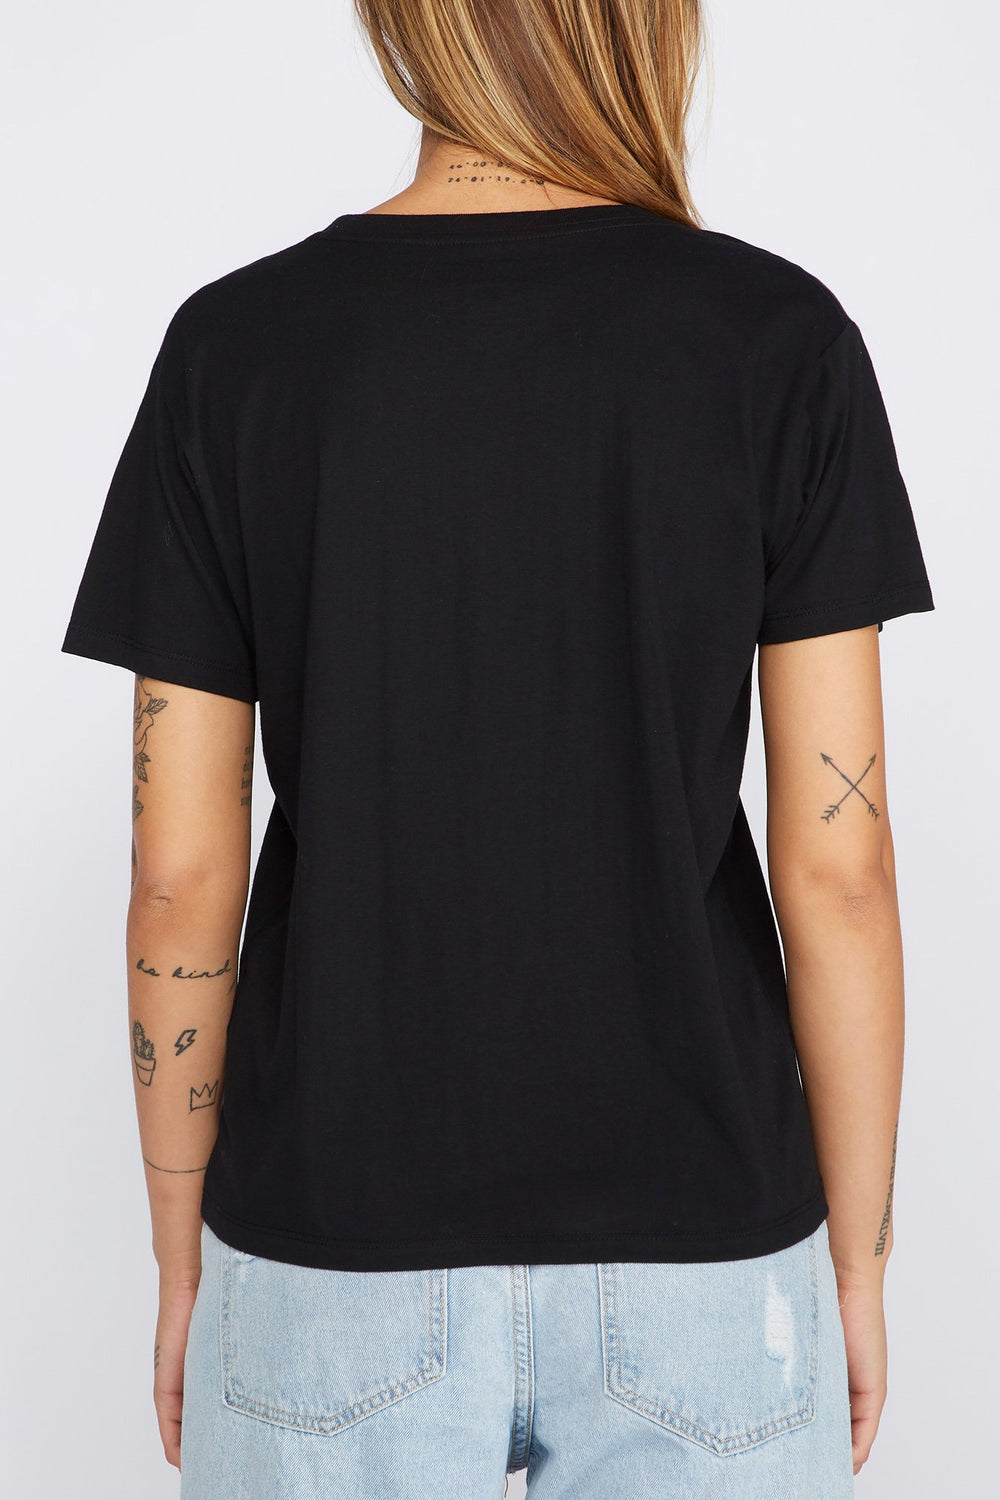 Zoo York Womens Rose Gold Logo T-Shirt Black